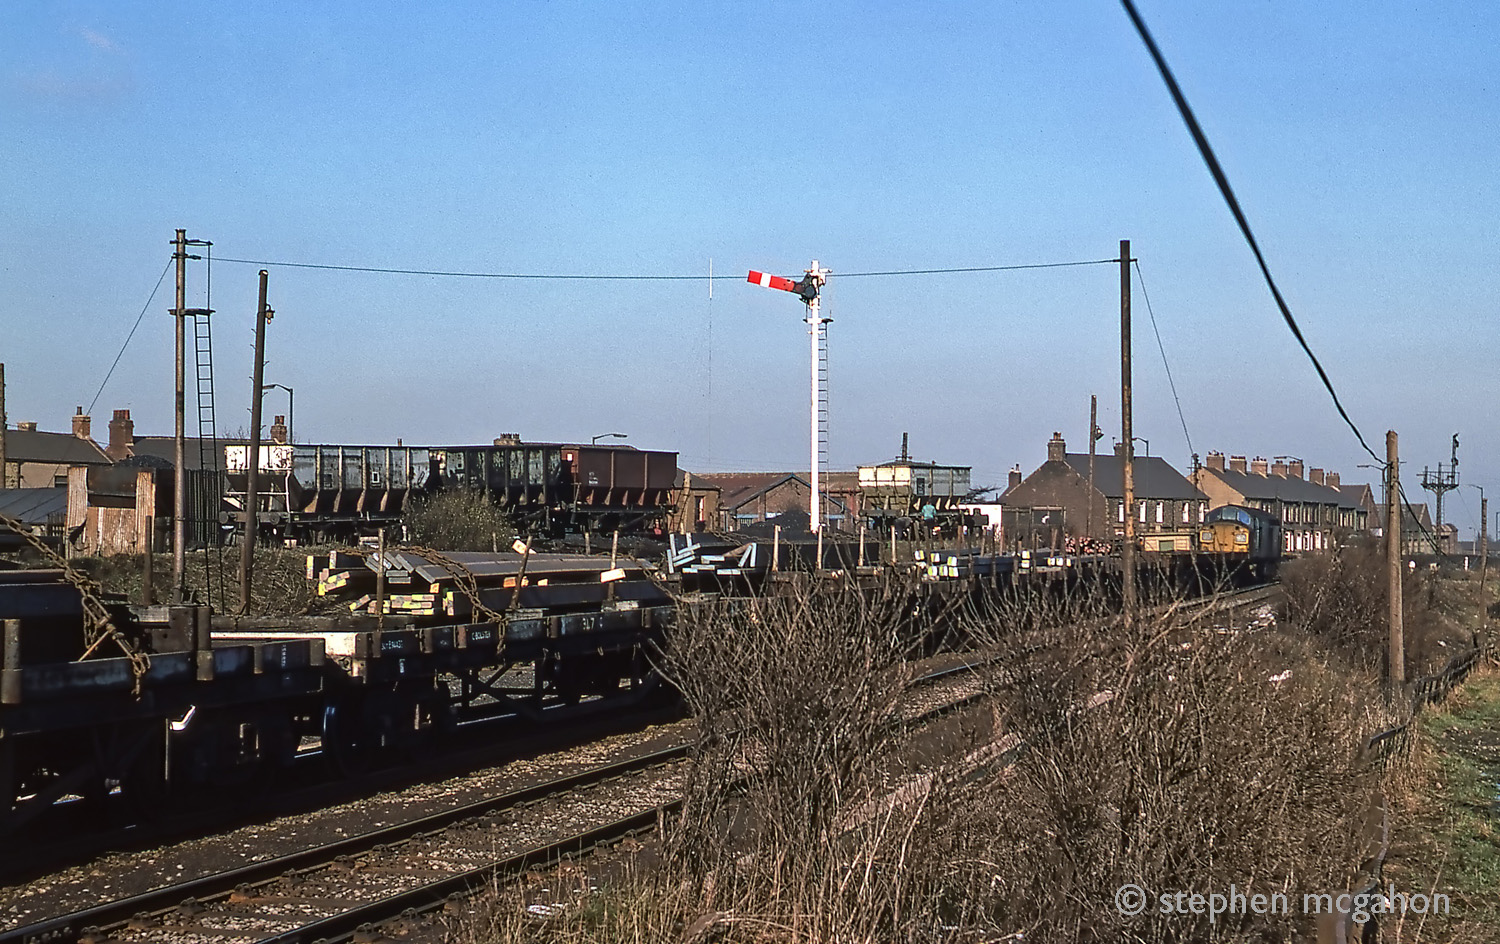 37100 leaving Consett with a steel train on 28th February 1977. Taken near the site of Carr House East box which had gone by then as shown by the missing signal arms from the bracket signal in the background. I think the box would have been in the shot as well. Looks like a new starting signal in the centre and the coal drops in use adds a bit of interest. Caption and photo from Stephen McGahon